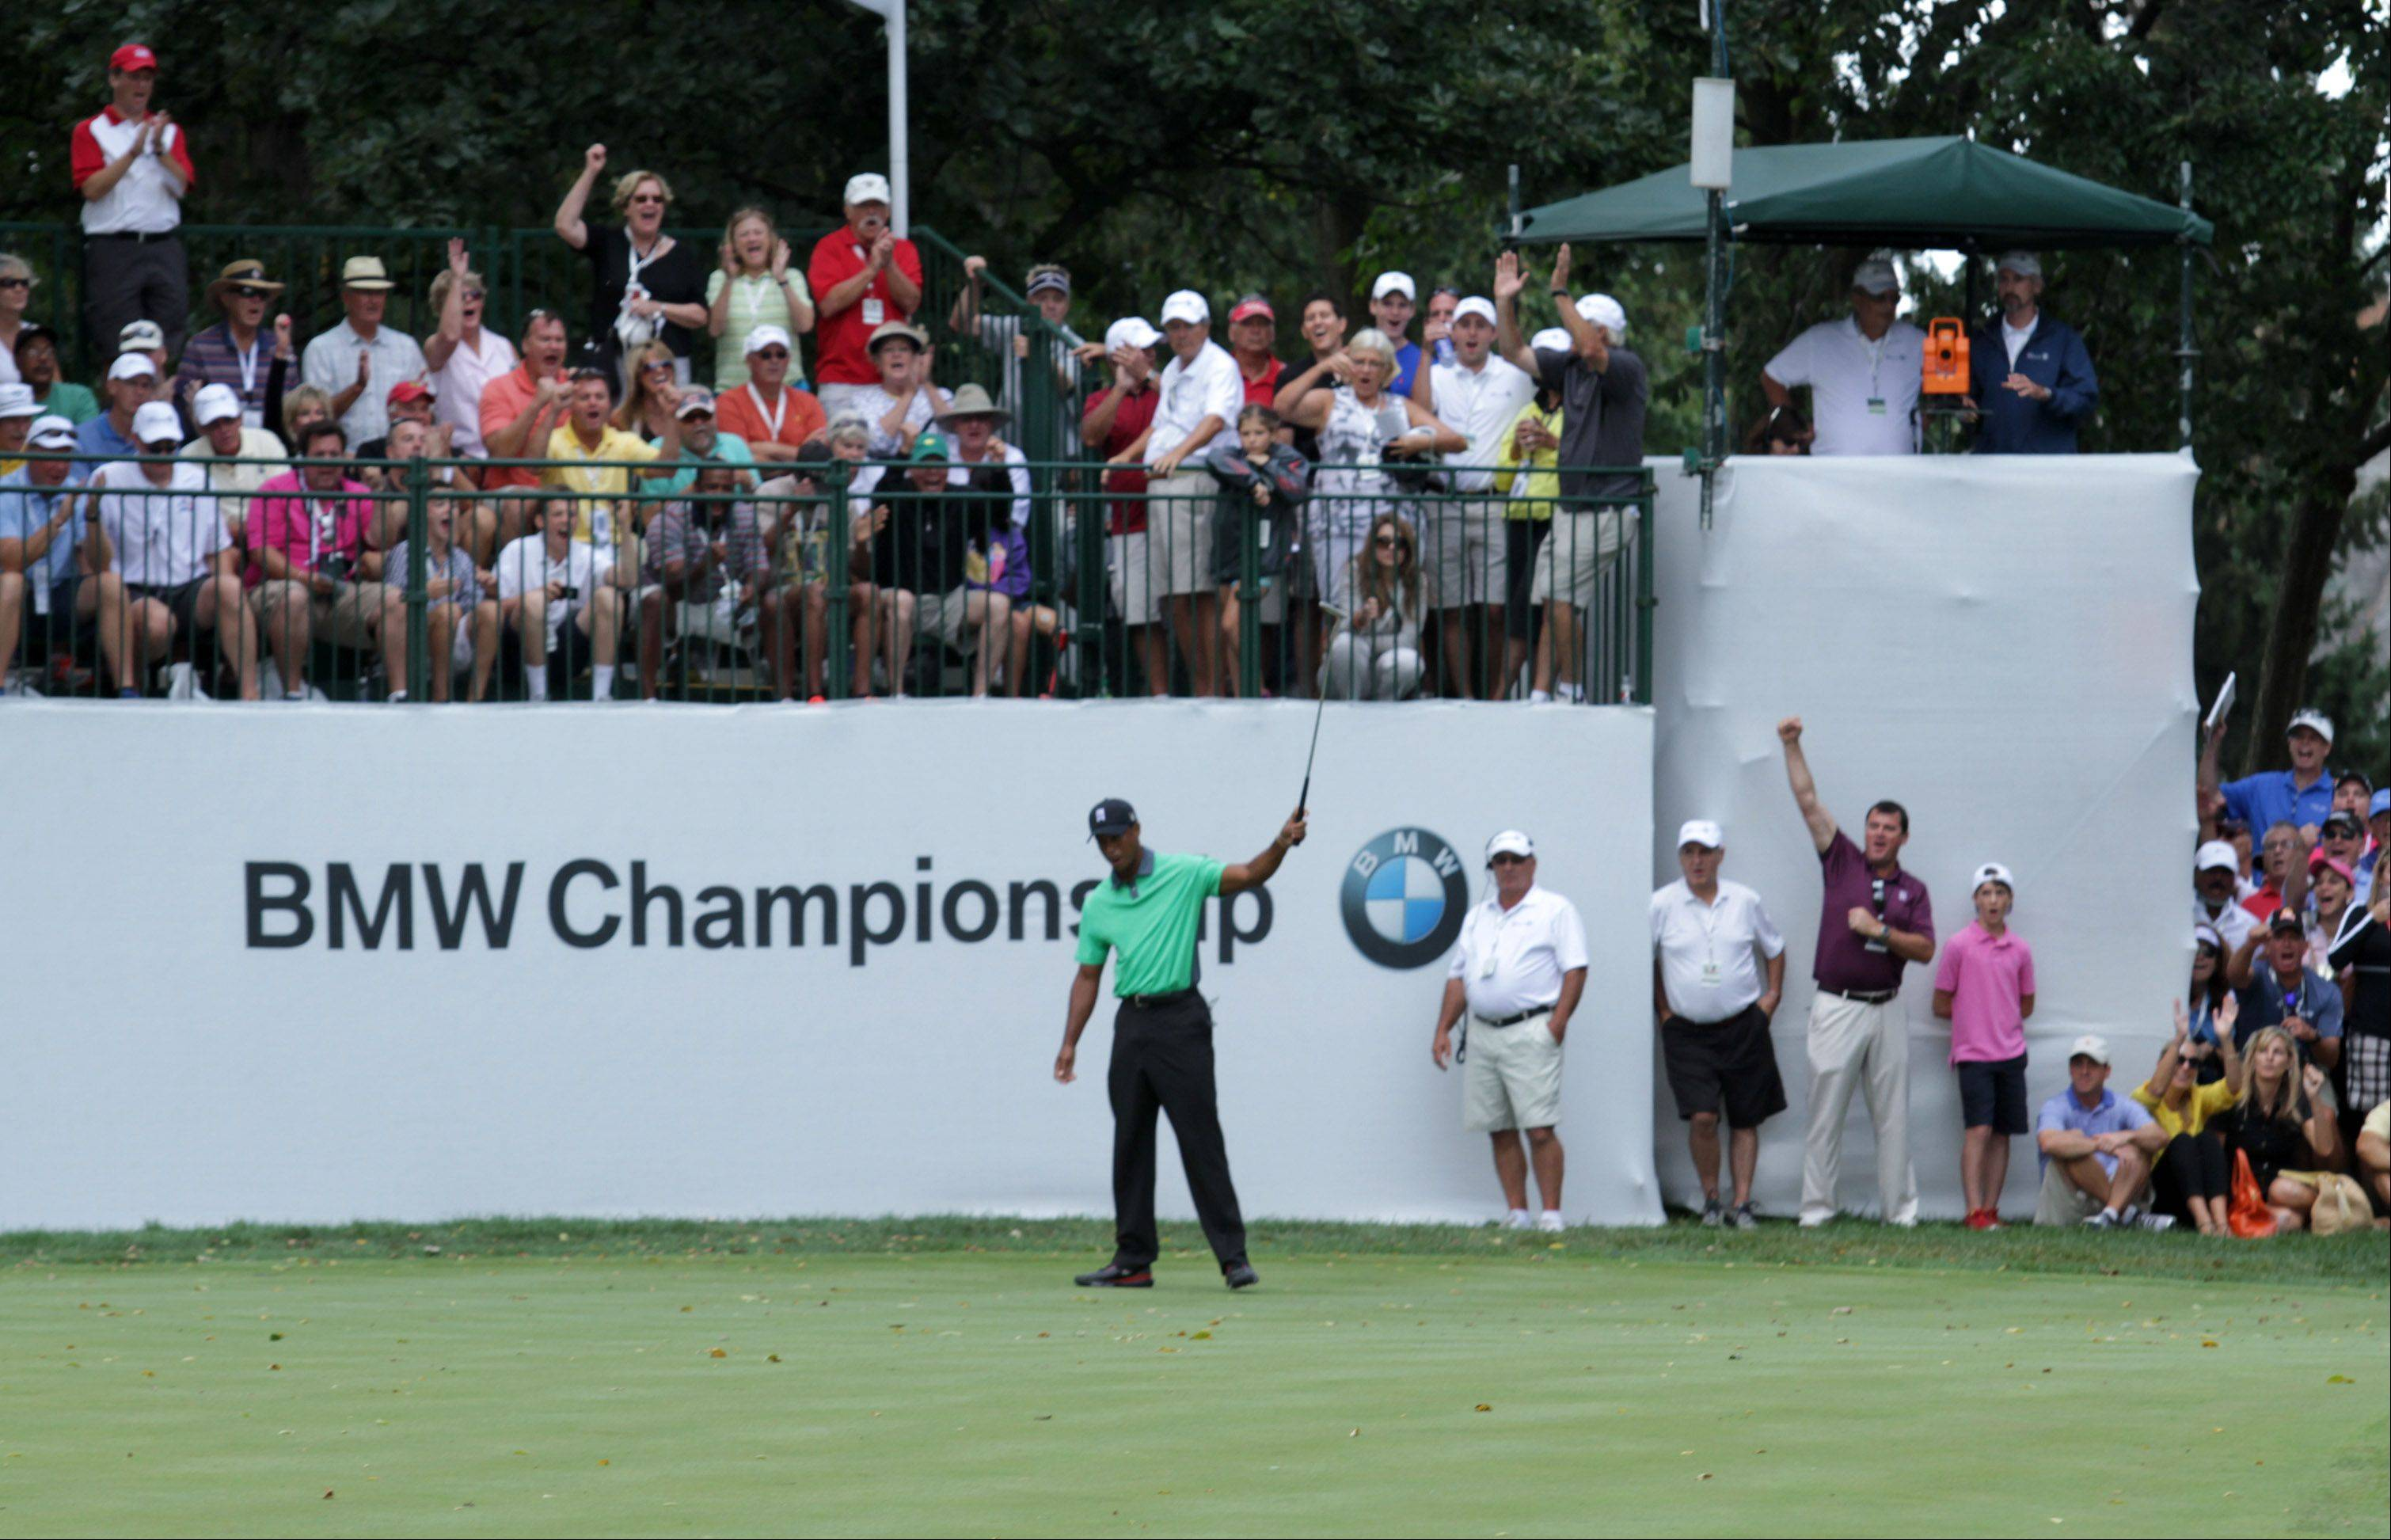 Fans cheer as Tiger Woods sinks a putt on the 9th.